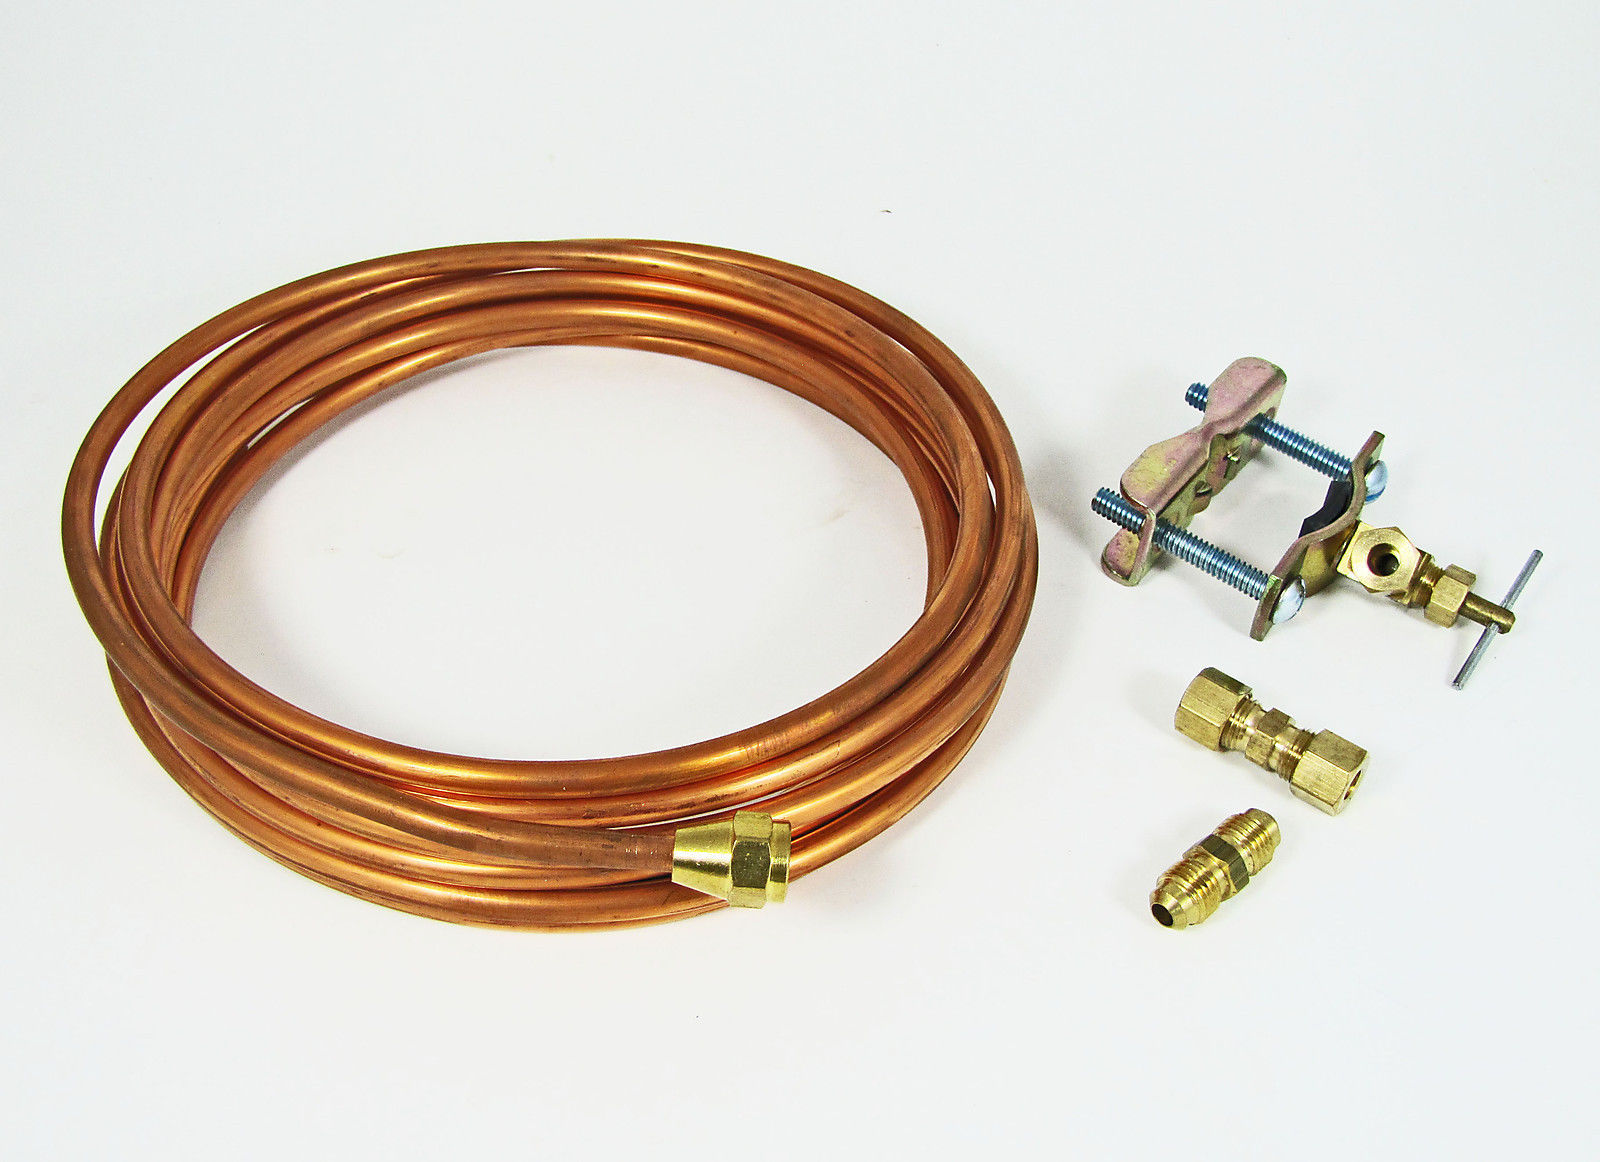 C115F SUPCO Icemaker / Humidifier Installation Kit 1/4 copper flare  #B1481A